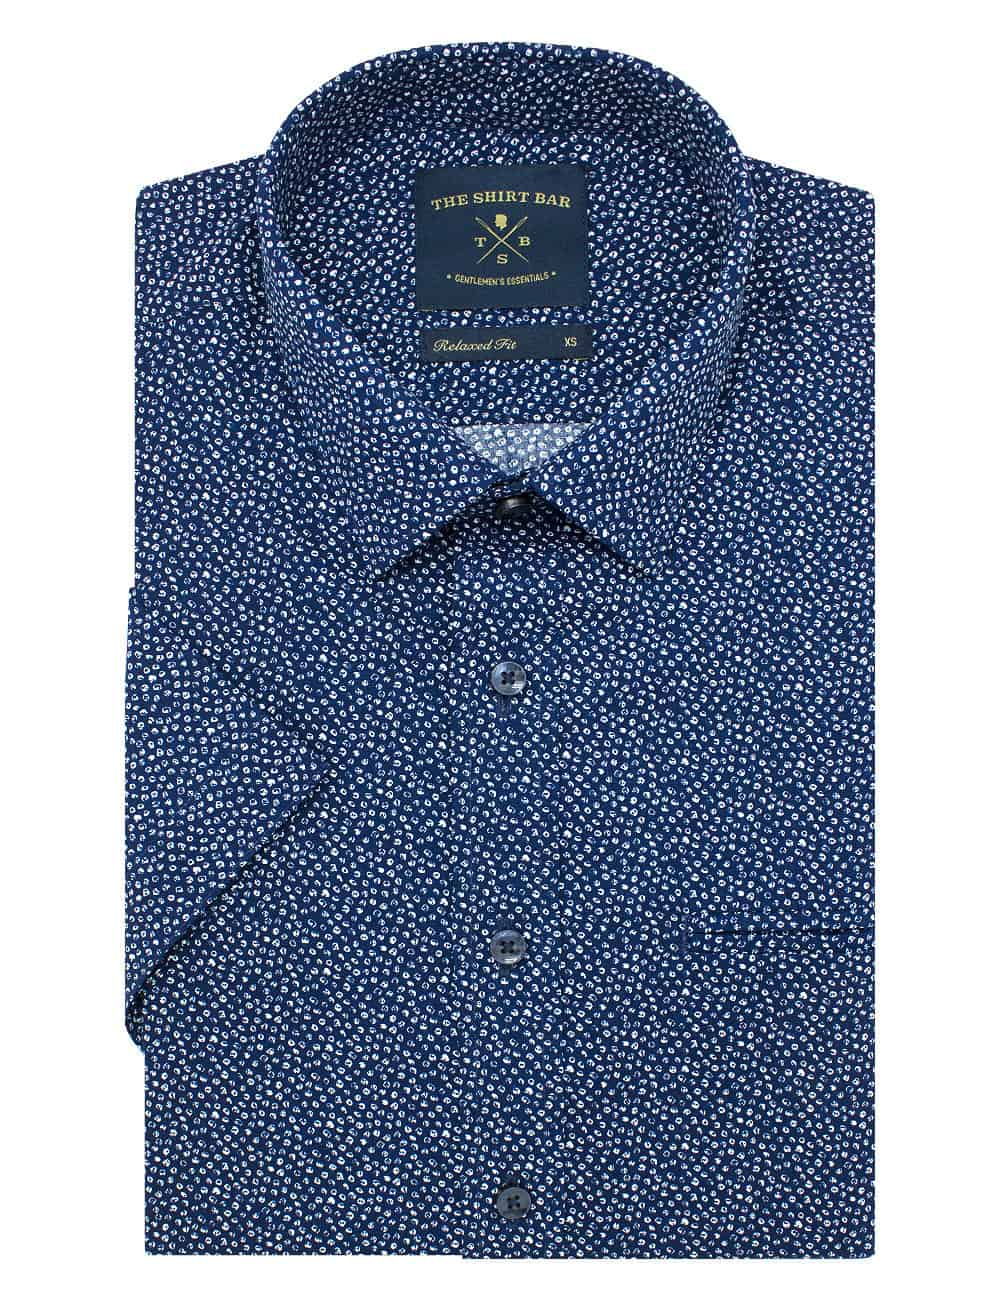 Relaxed Fit 100% Premium Cotton Navy with White Print Short Sleeve Shirt RF9SNB3.17